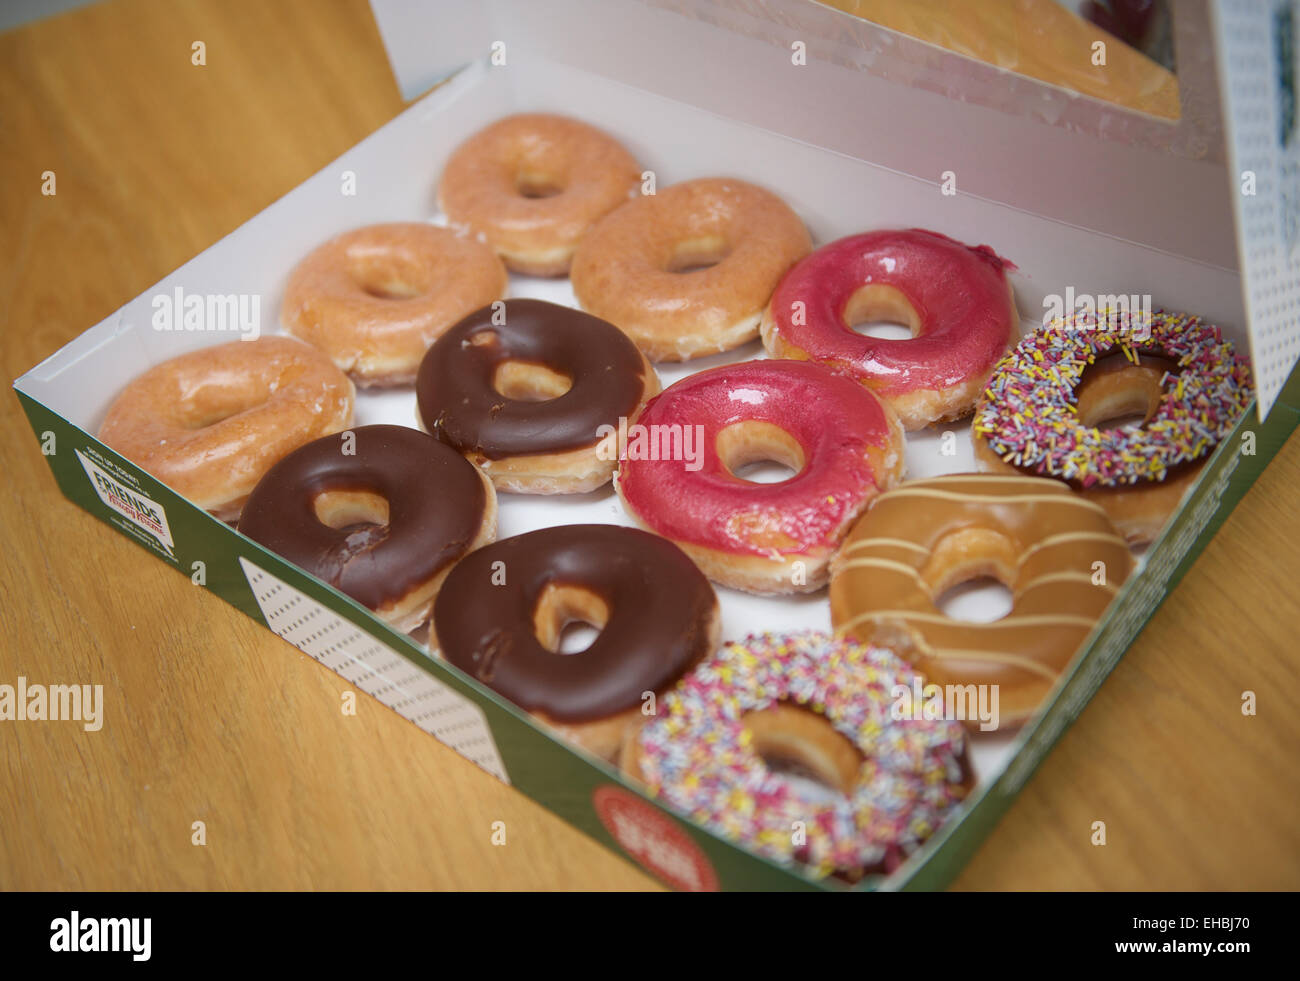 Box Of Krispy Donuts Wiring Diagrams Fun With Snap Circuits 4 Let There Be Light Funwithsnapcircuits Kreme Doughnuts Treats Desserts Stock Photo 79546404 Alamy Rh Com